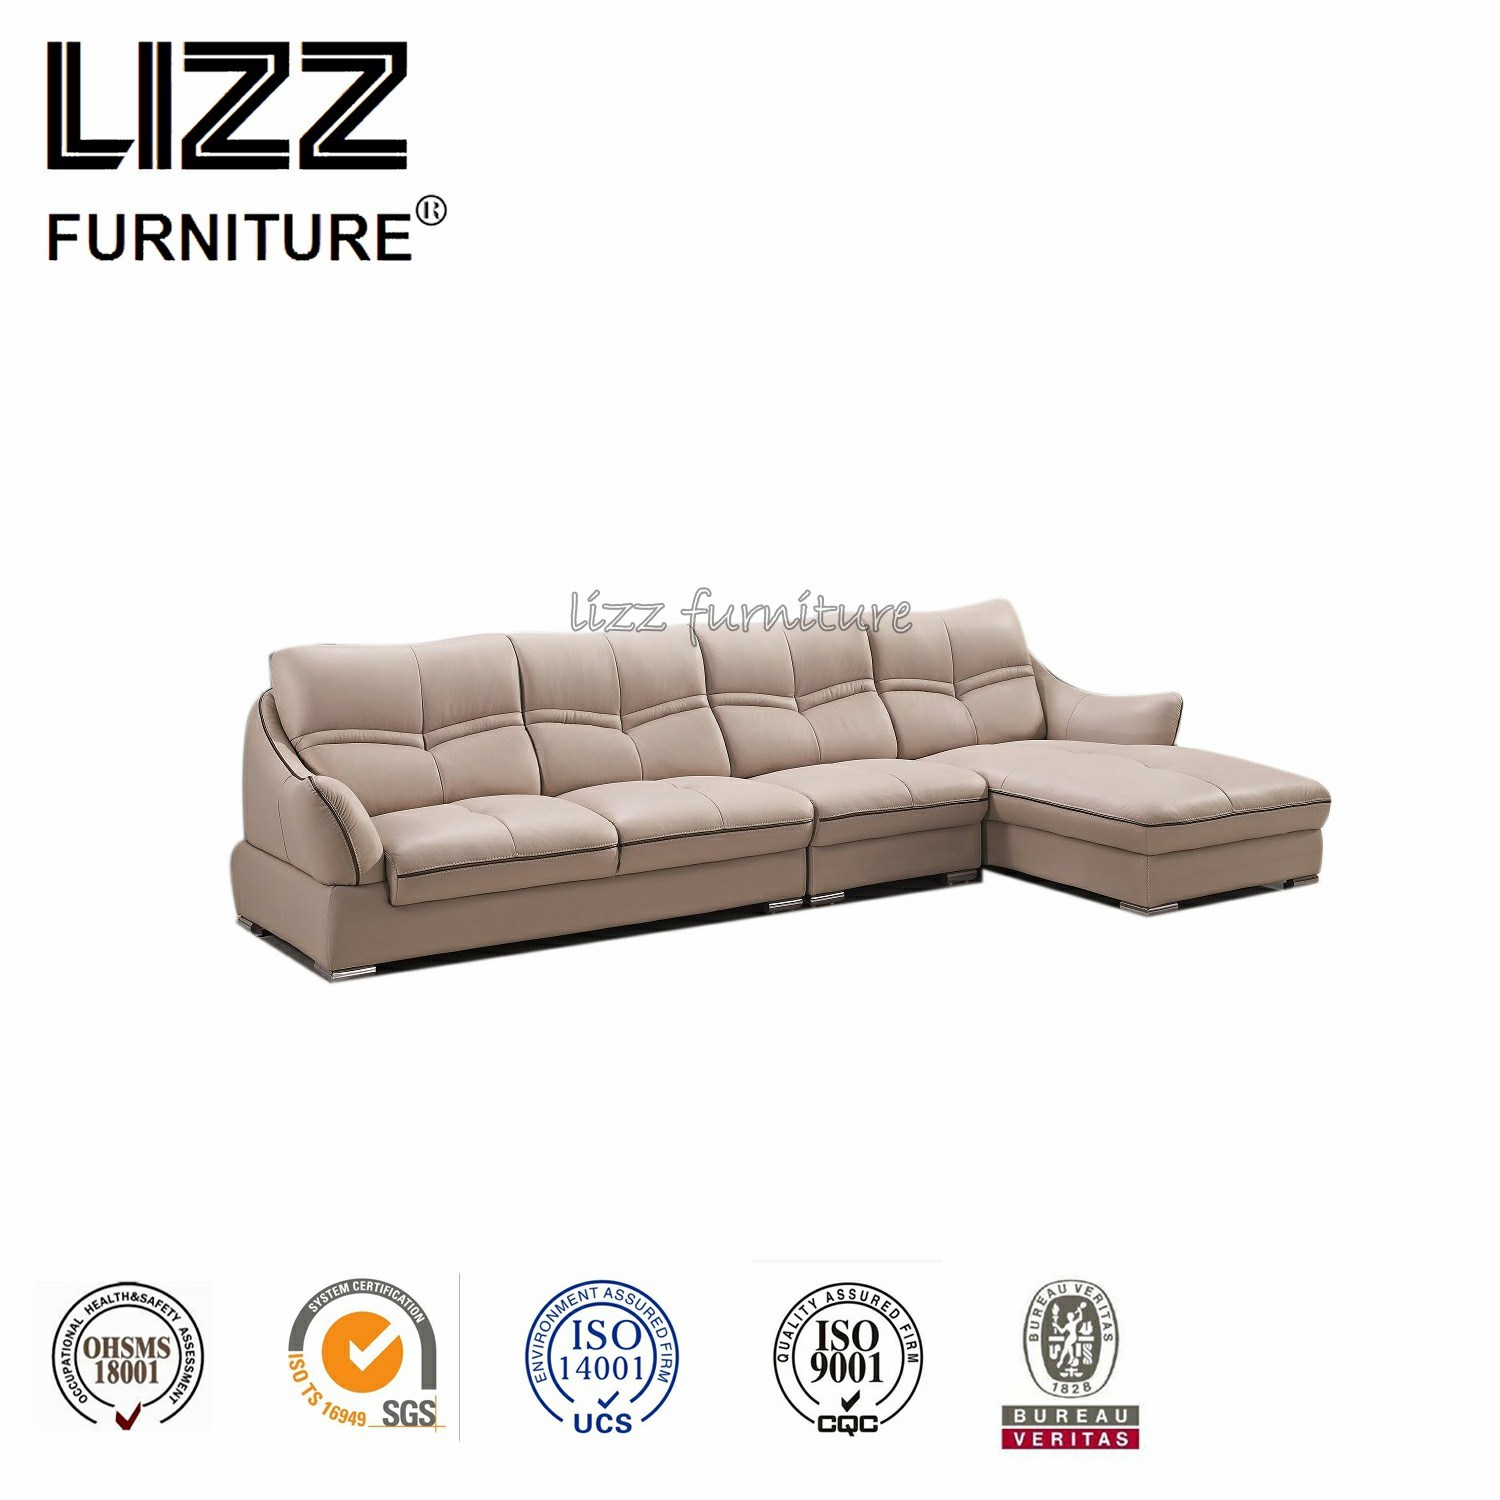 Magnificent Hot Item Native Modern Heated Leather Sofa Skinn Sofa Style Bralicious Painted Fabric Chair Ideas Braliciousco